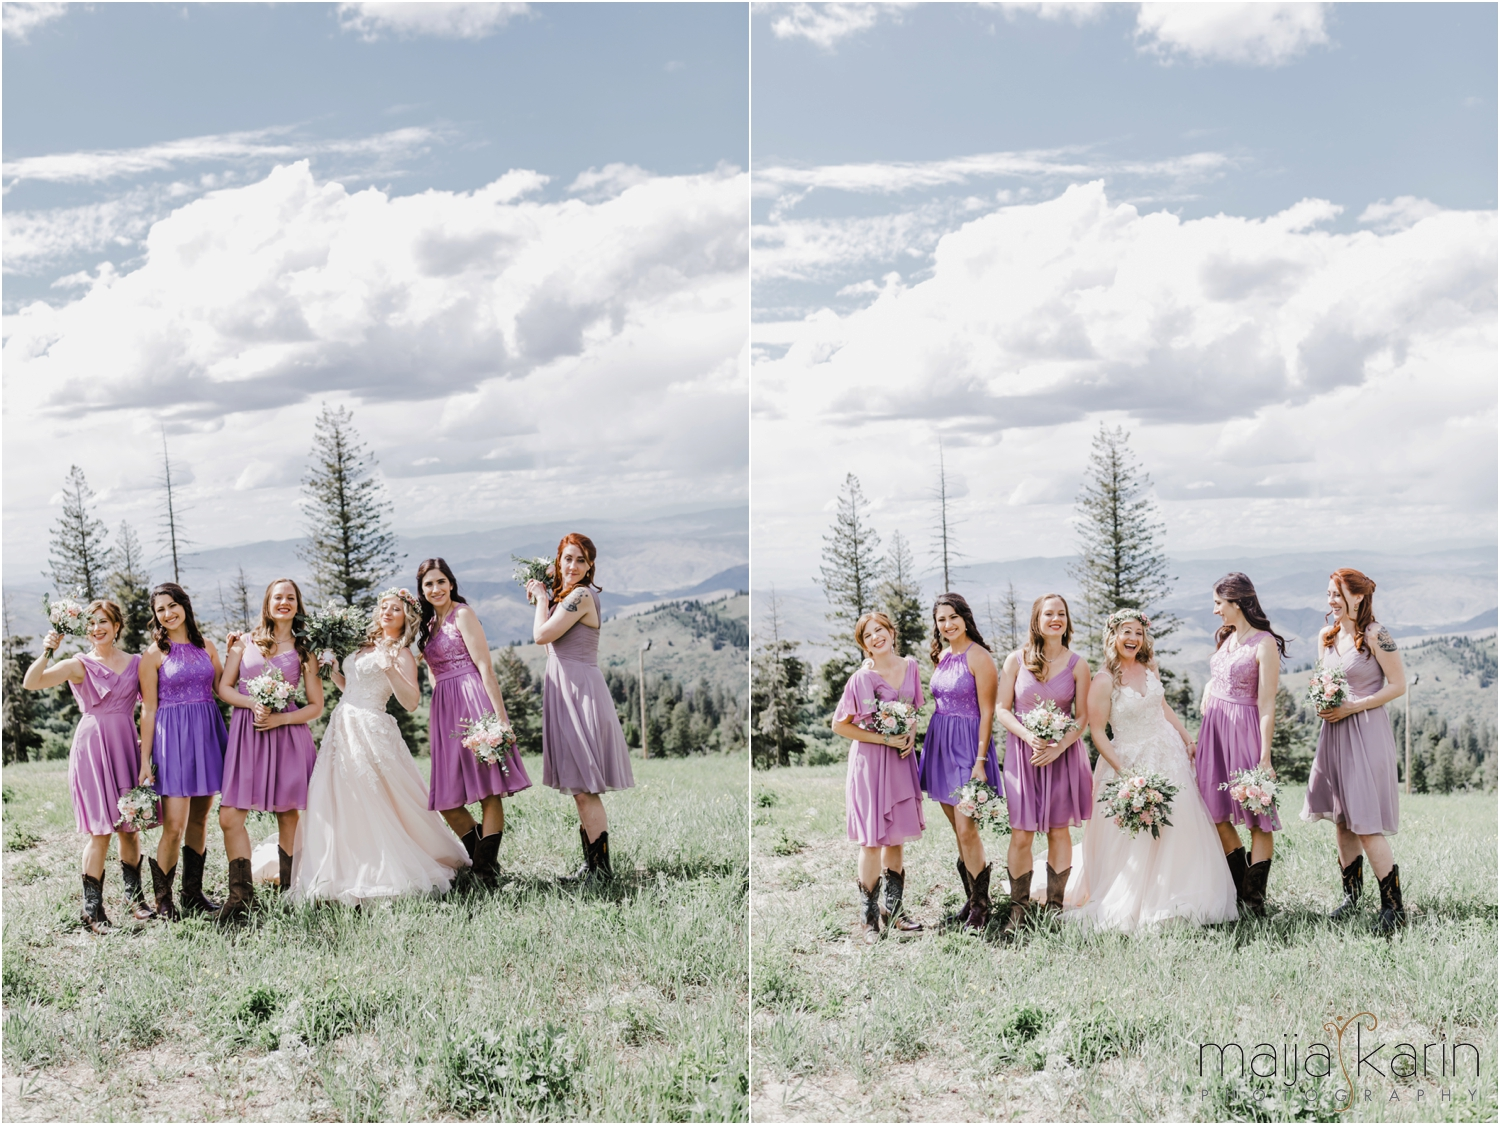 Bogus-Basin-Wedding-Maija-Karin-Photography_0021.jpg